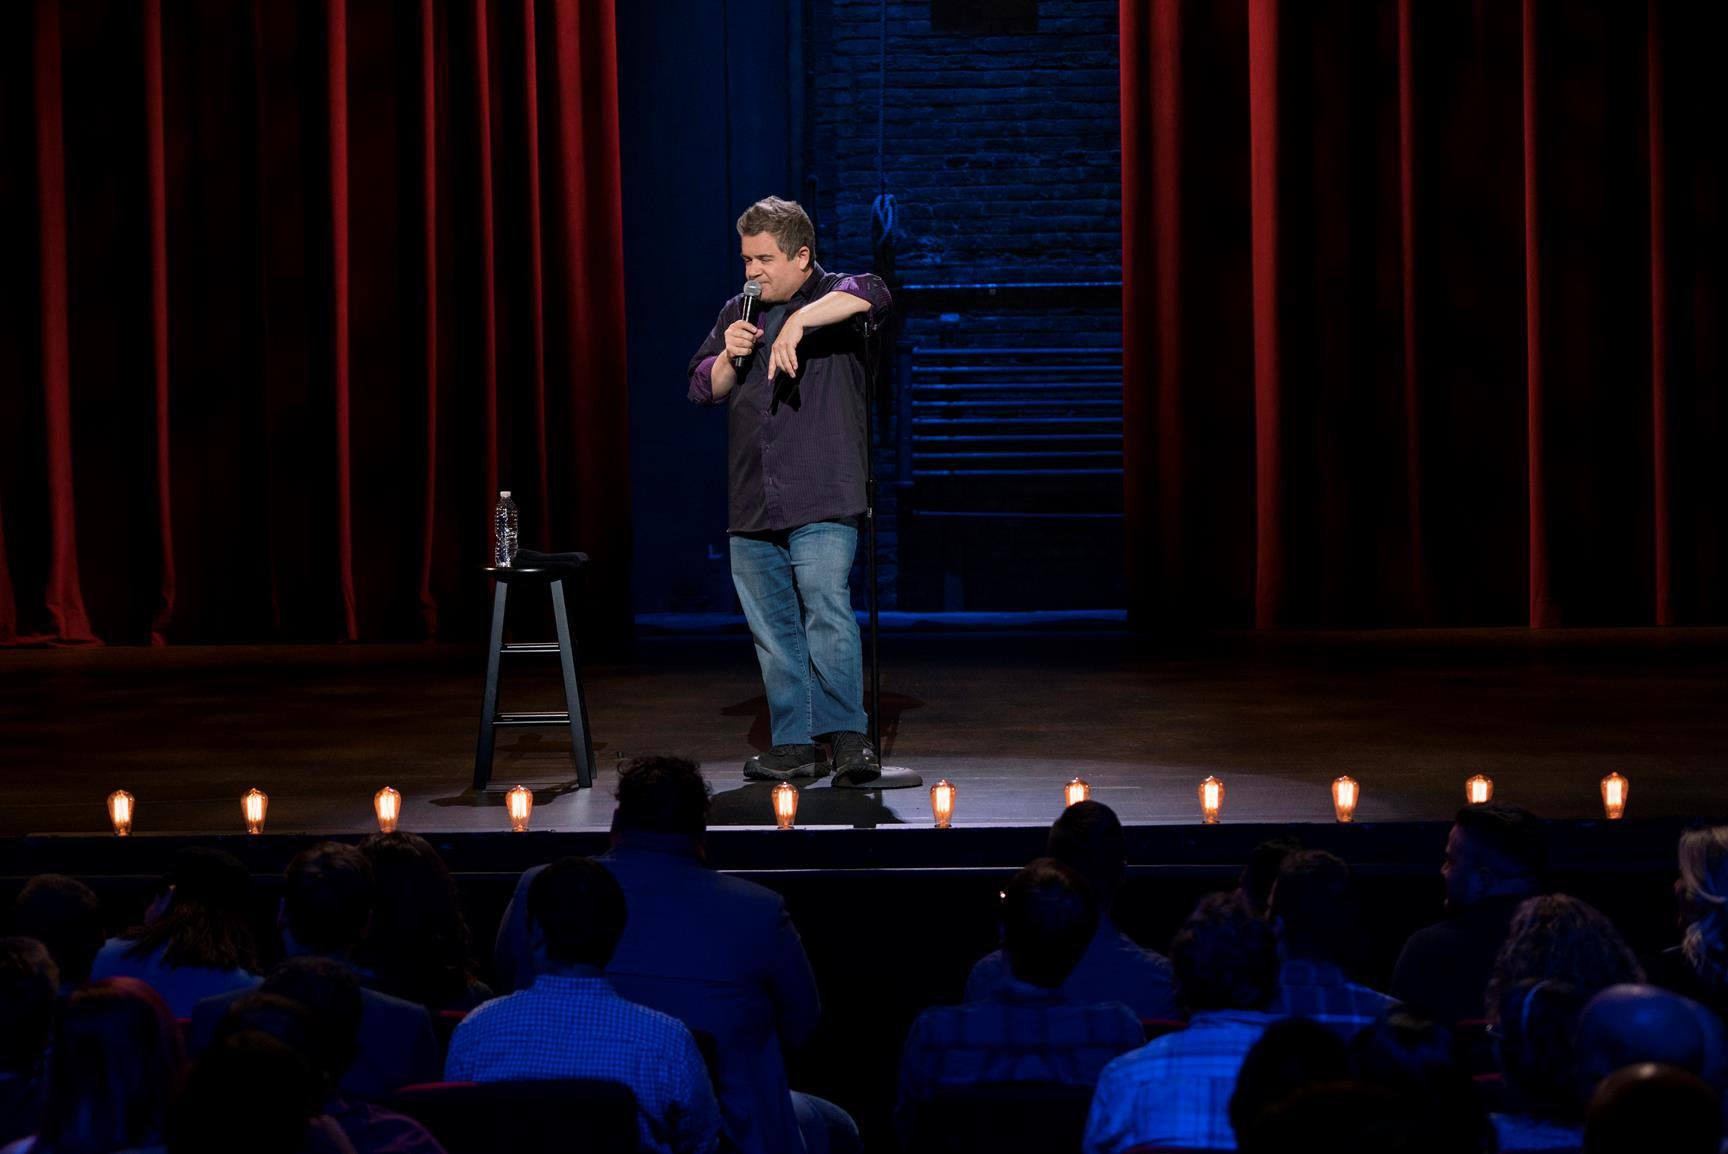 Patton Oswalt stands on stage holding a microphone